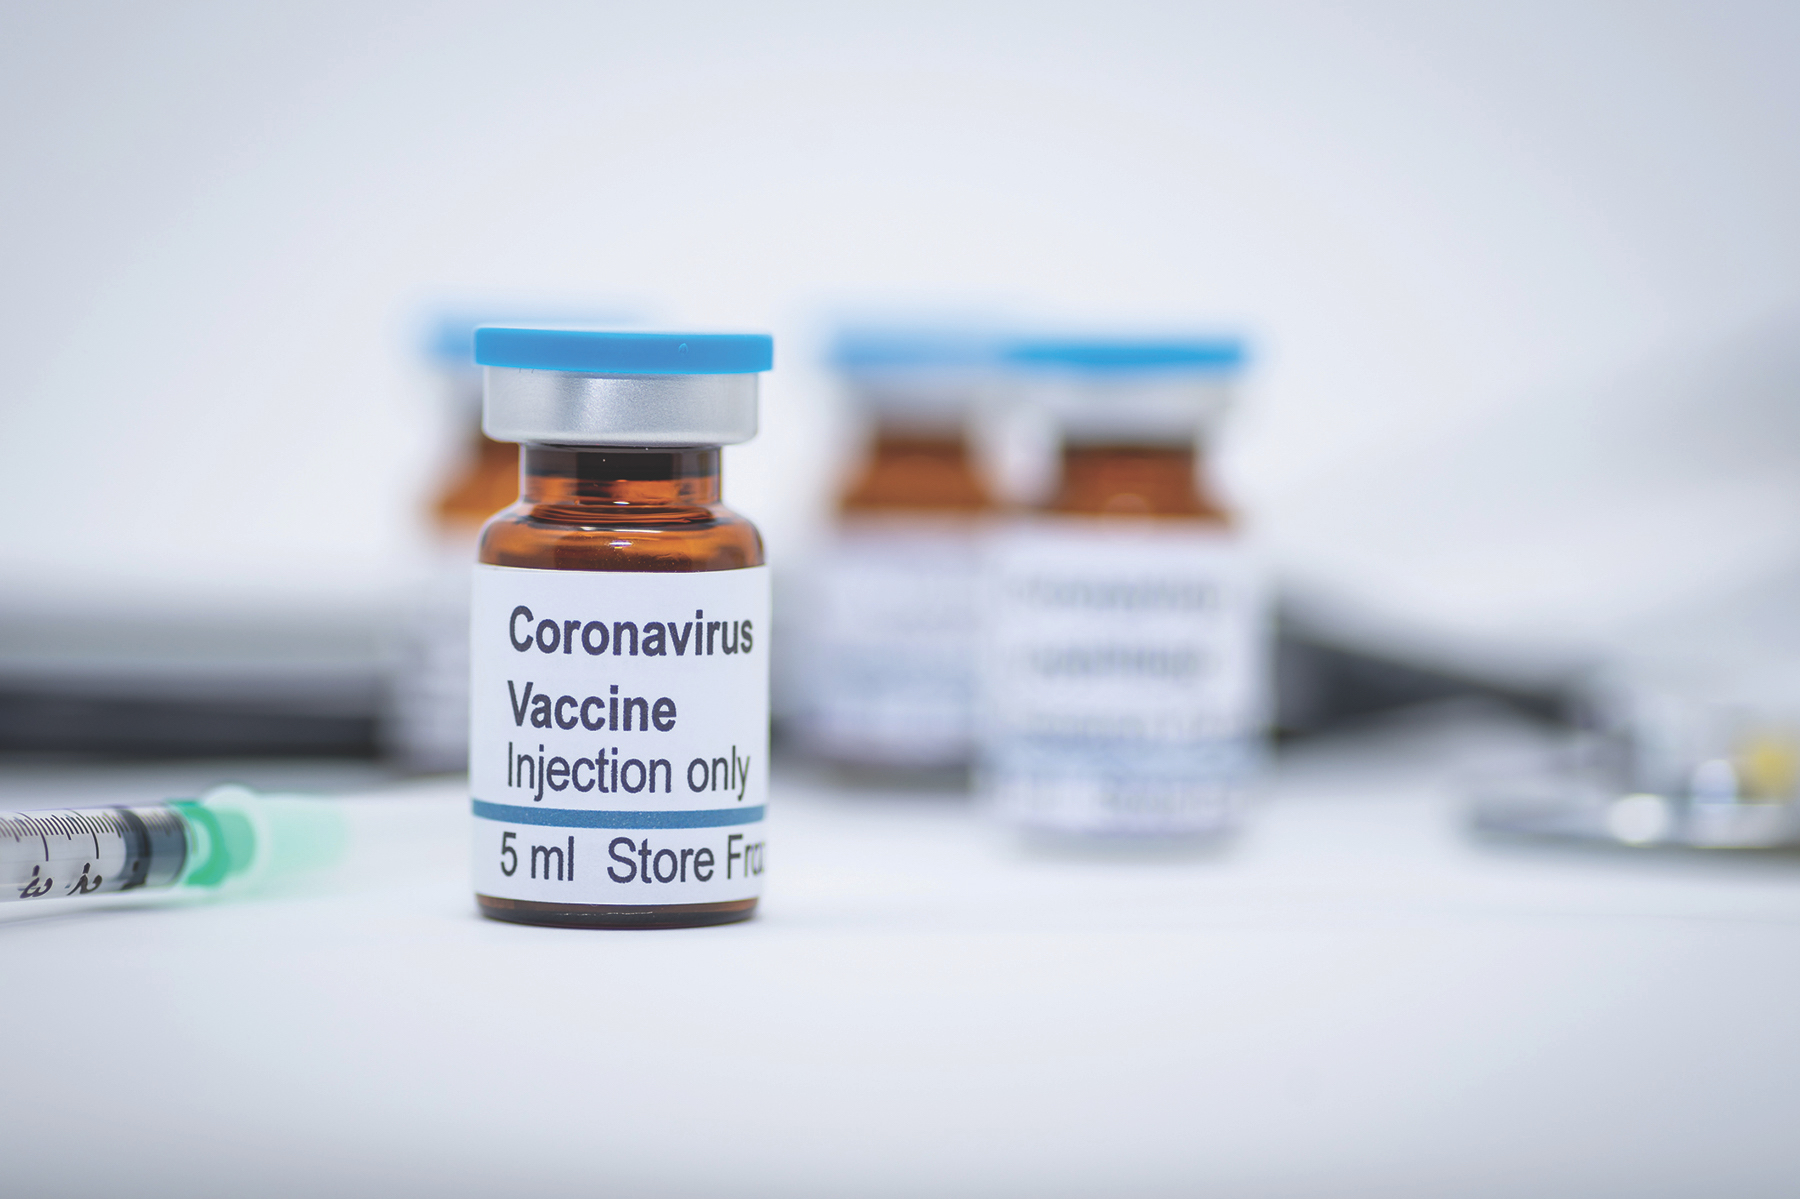 GSK and Sanofi to start human trials of potential Covid-19 vaccine